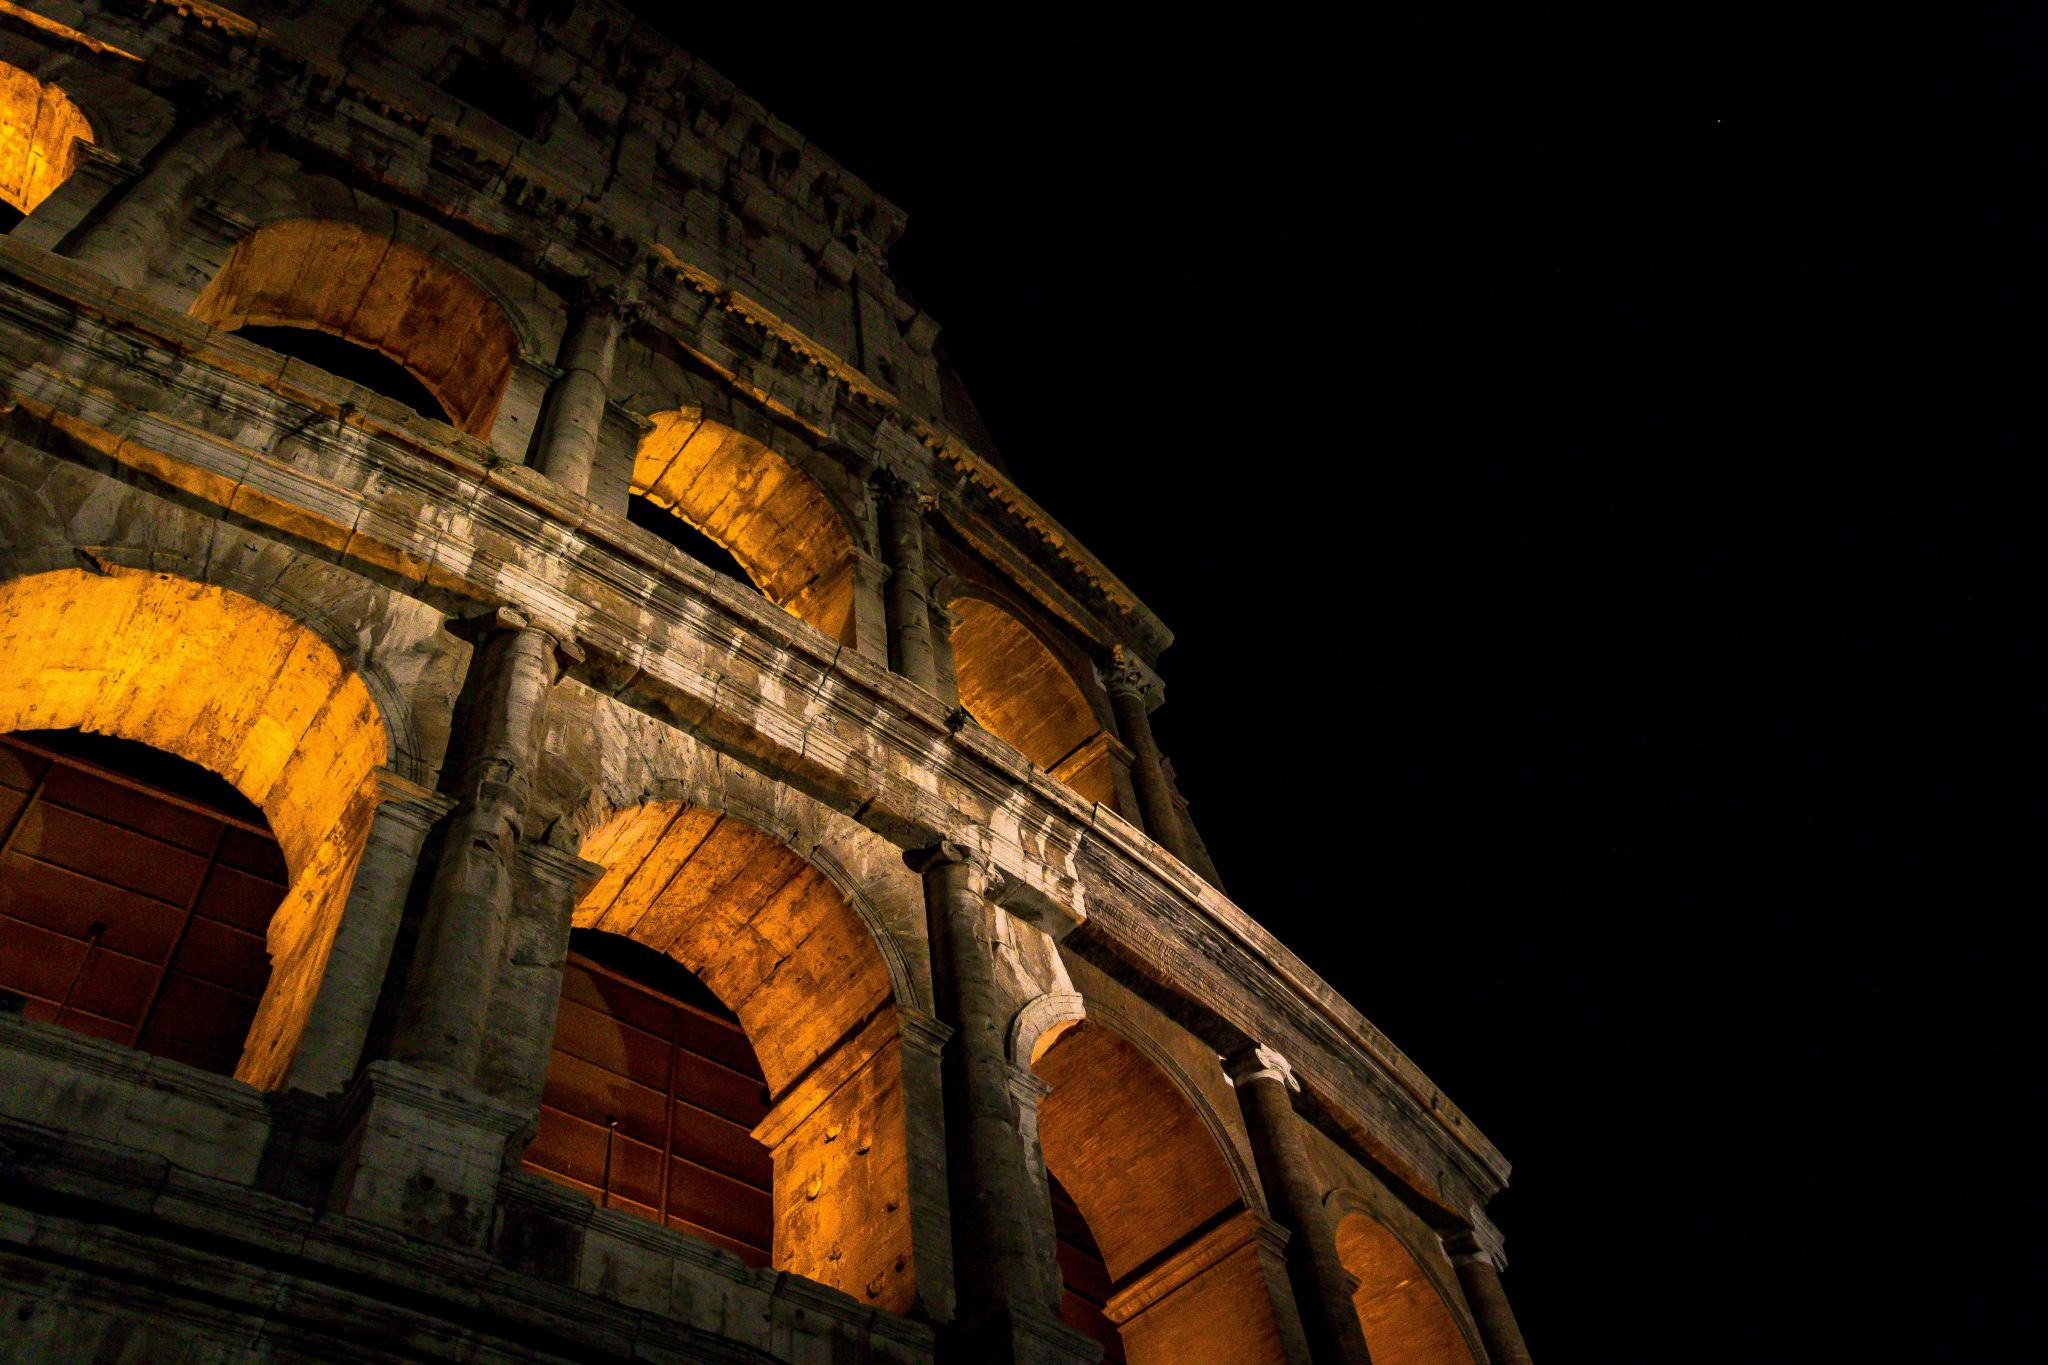 Colosseo at night, Italy